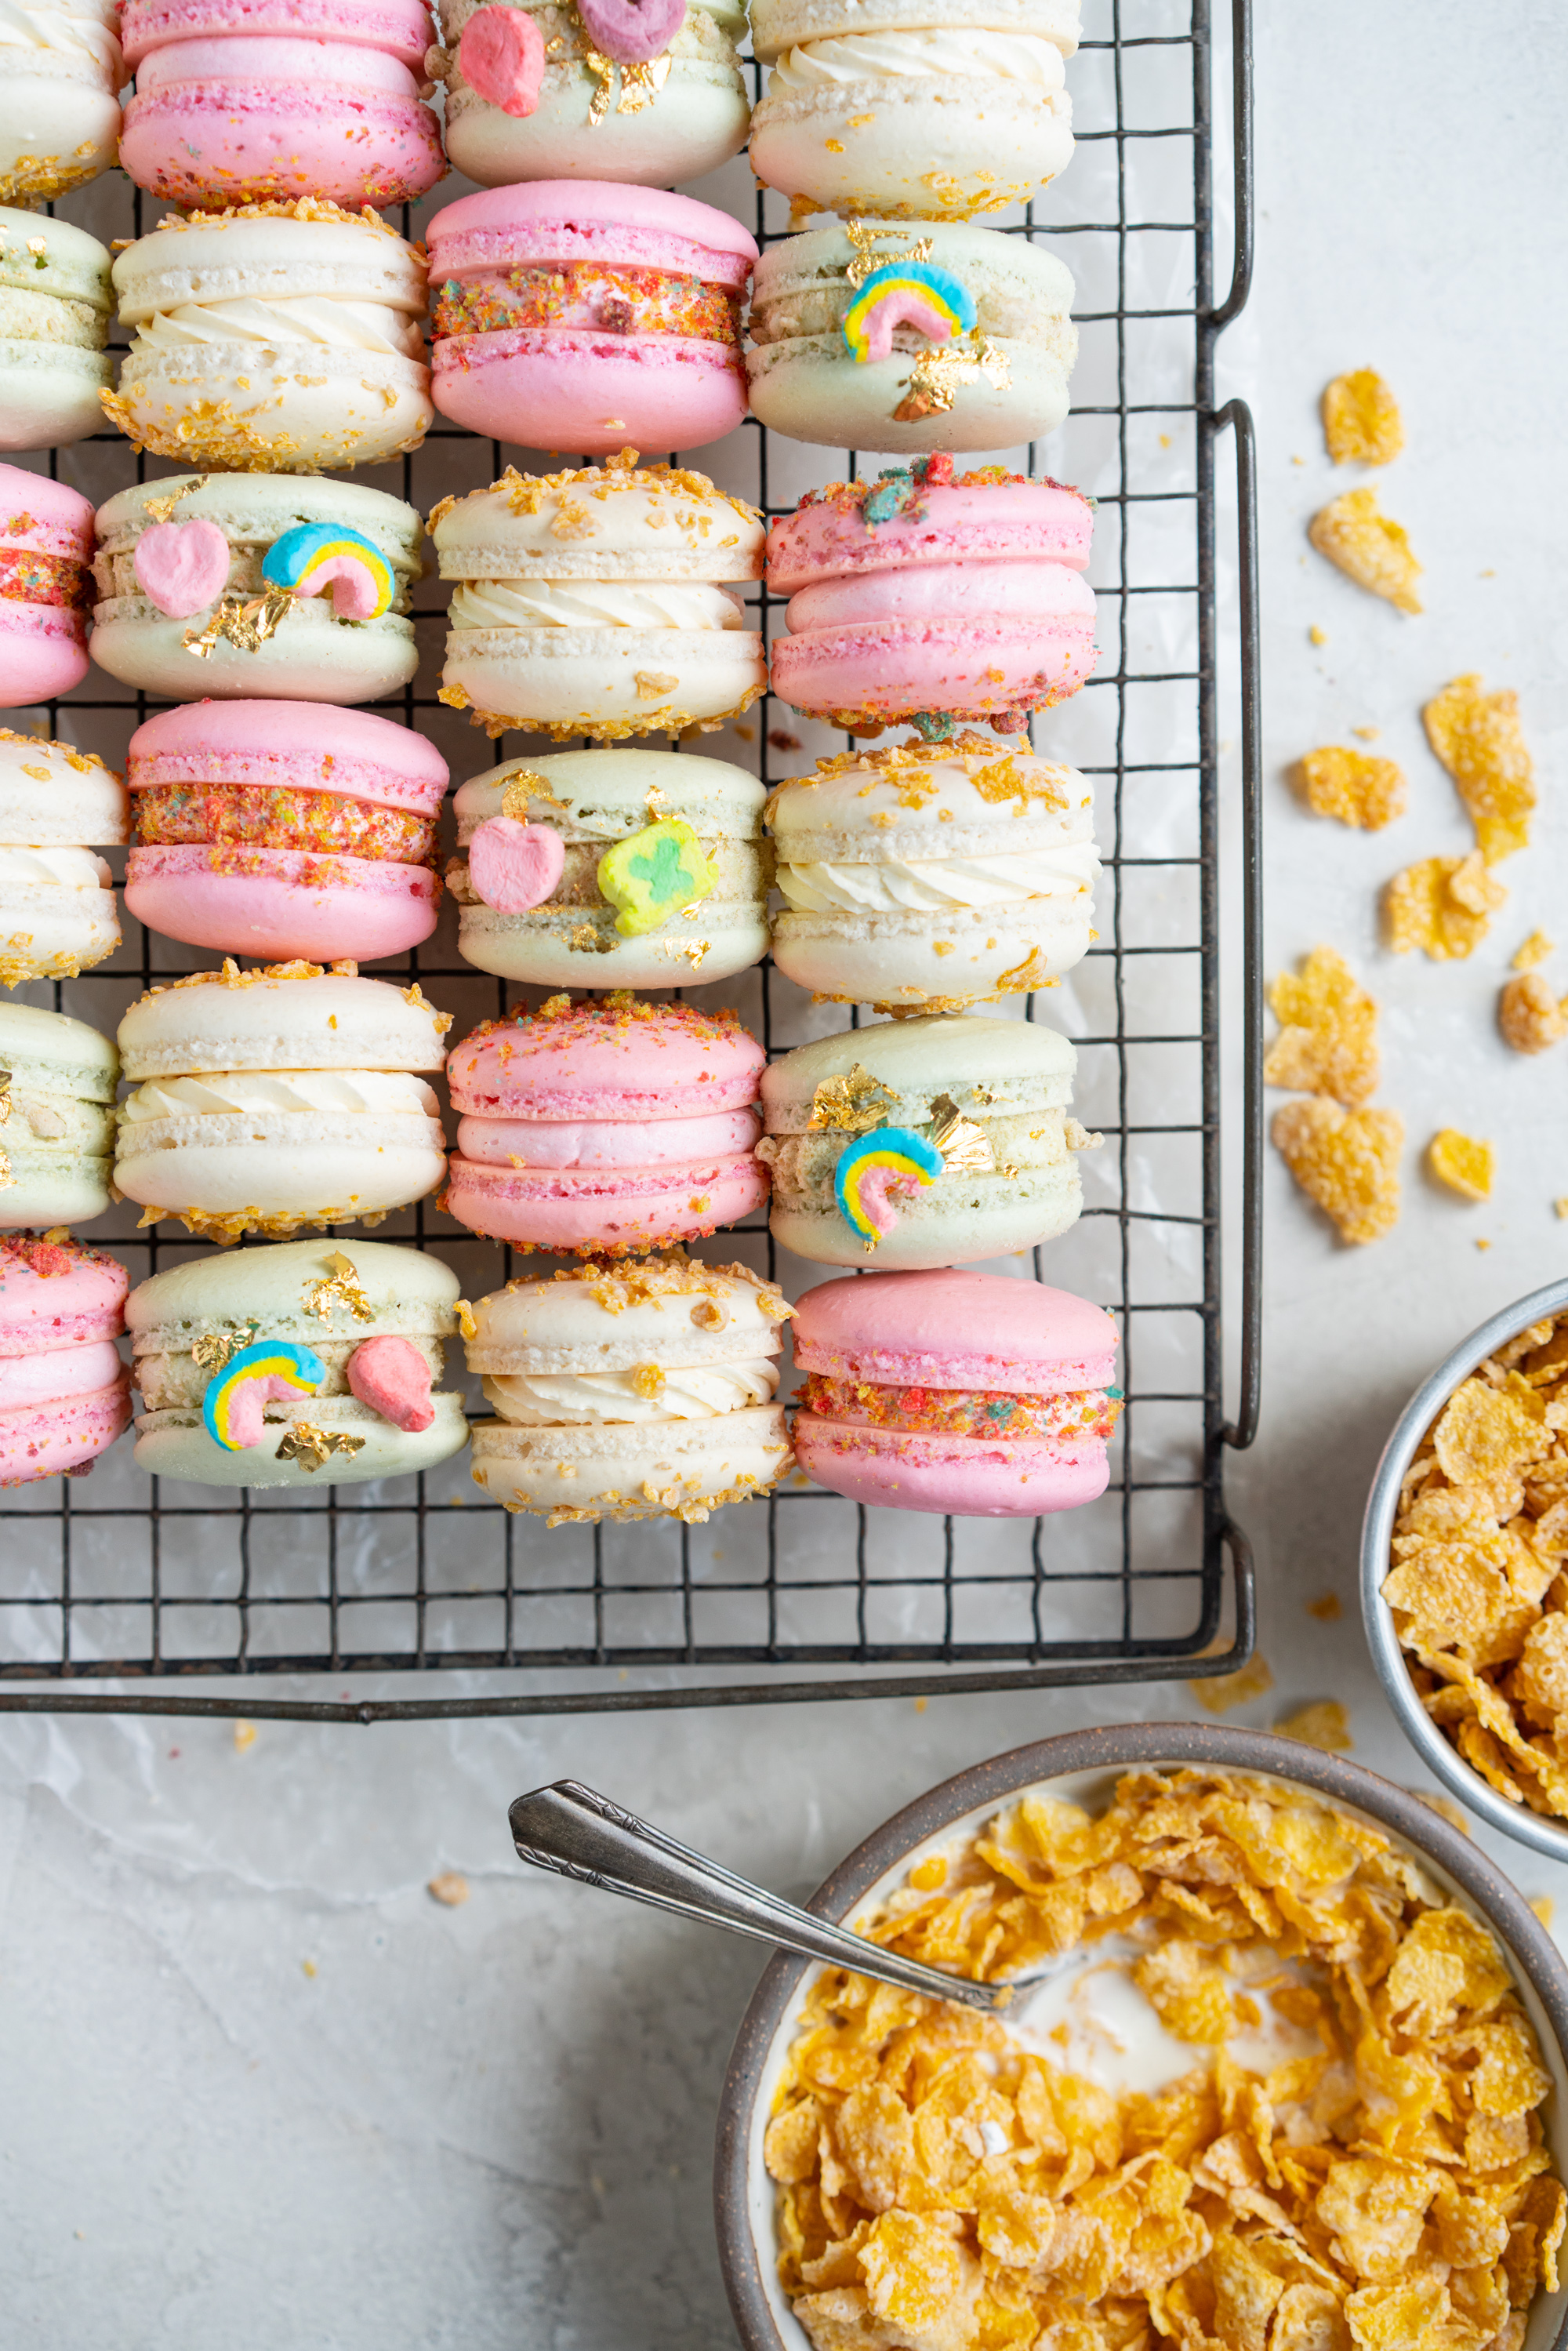 French Macarons with Cereal Milk German Buttercream. These Easy French Macarons are filled with a cereal infused german buttercream. They are an elevated version of your favourite childhood cereal. Frosted Flakes, Lucky Charms, Trix. #frenchmacarons #easymacarons #macaronrecipe